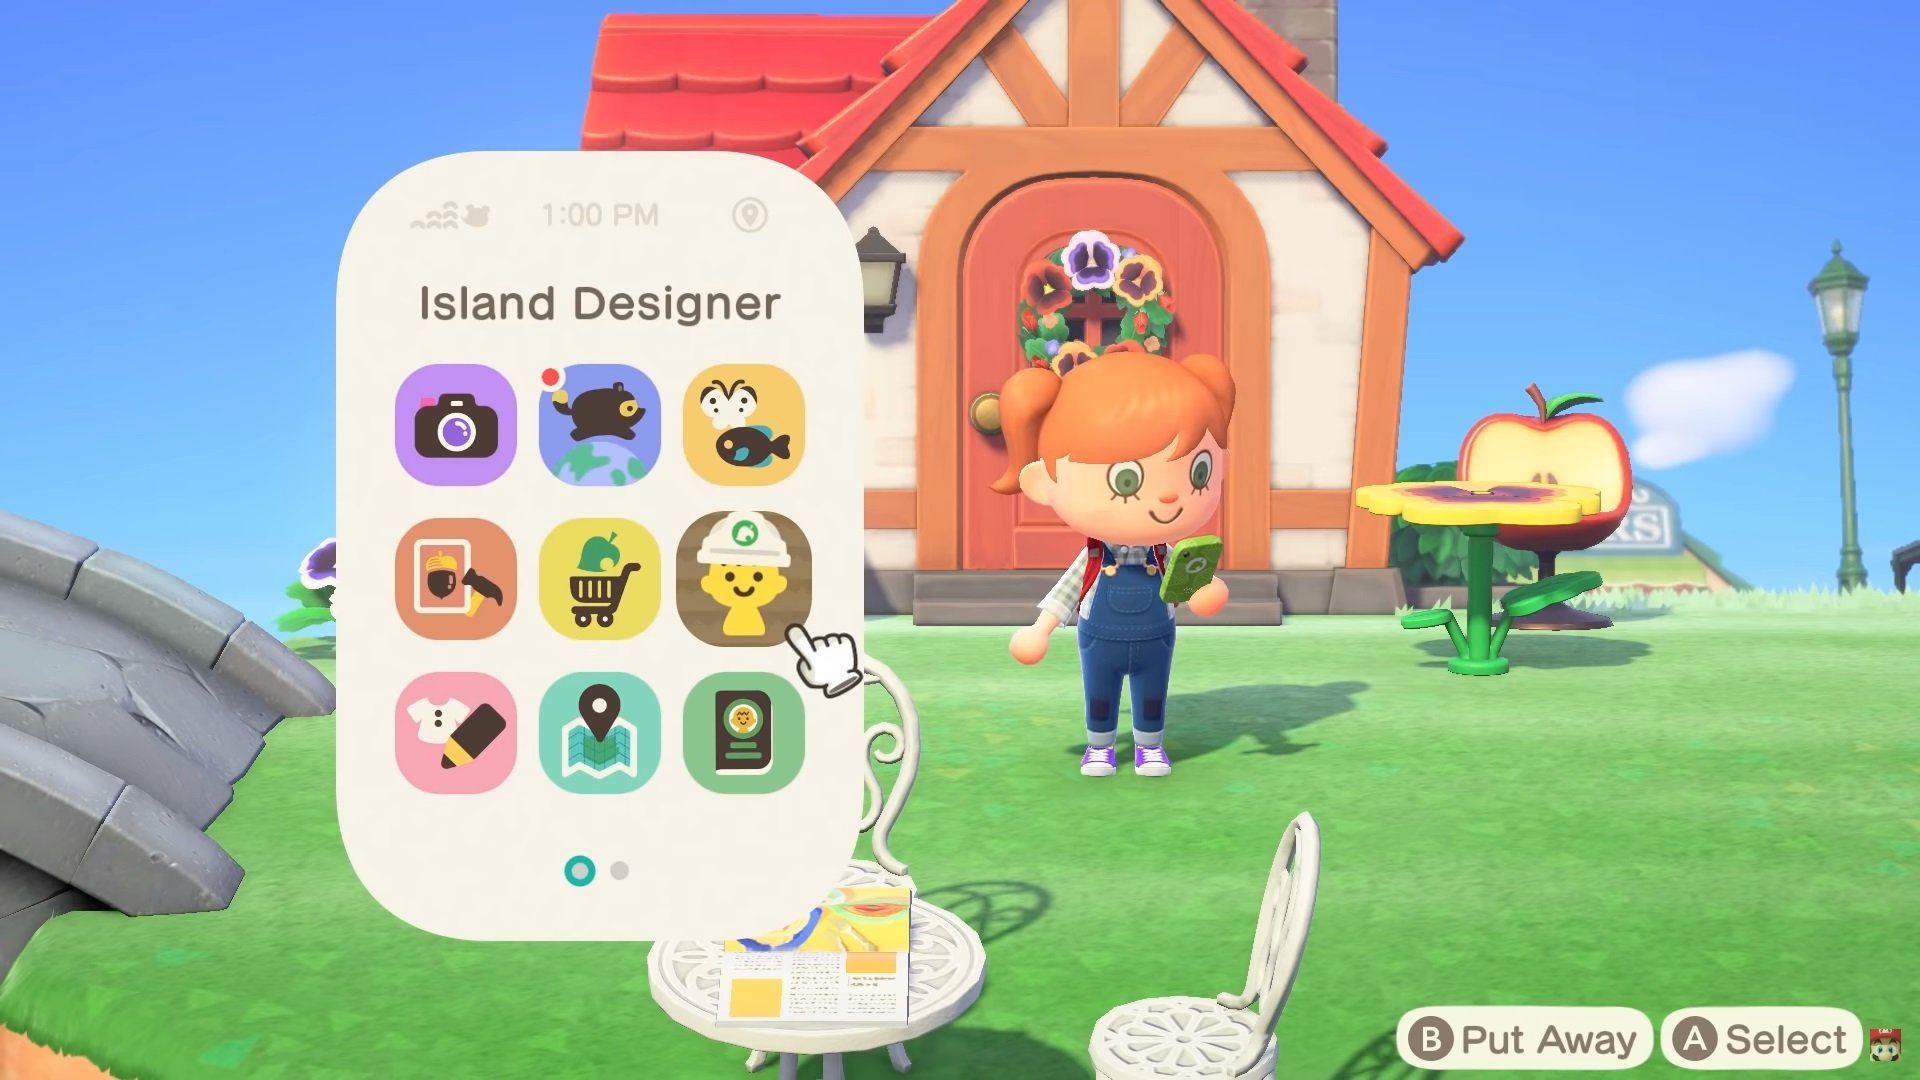 How to build a path in Animal Crossing: New Horizons